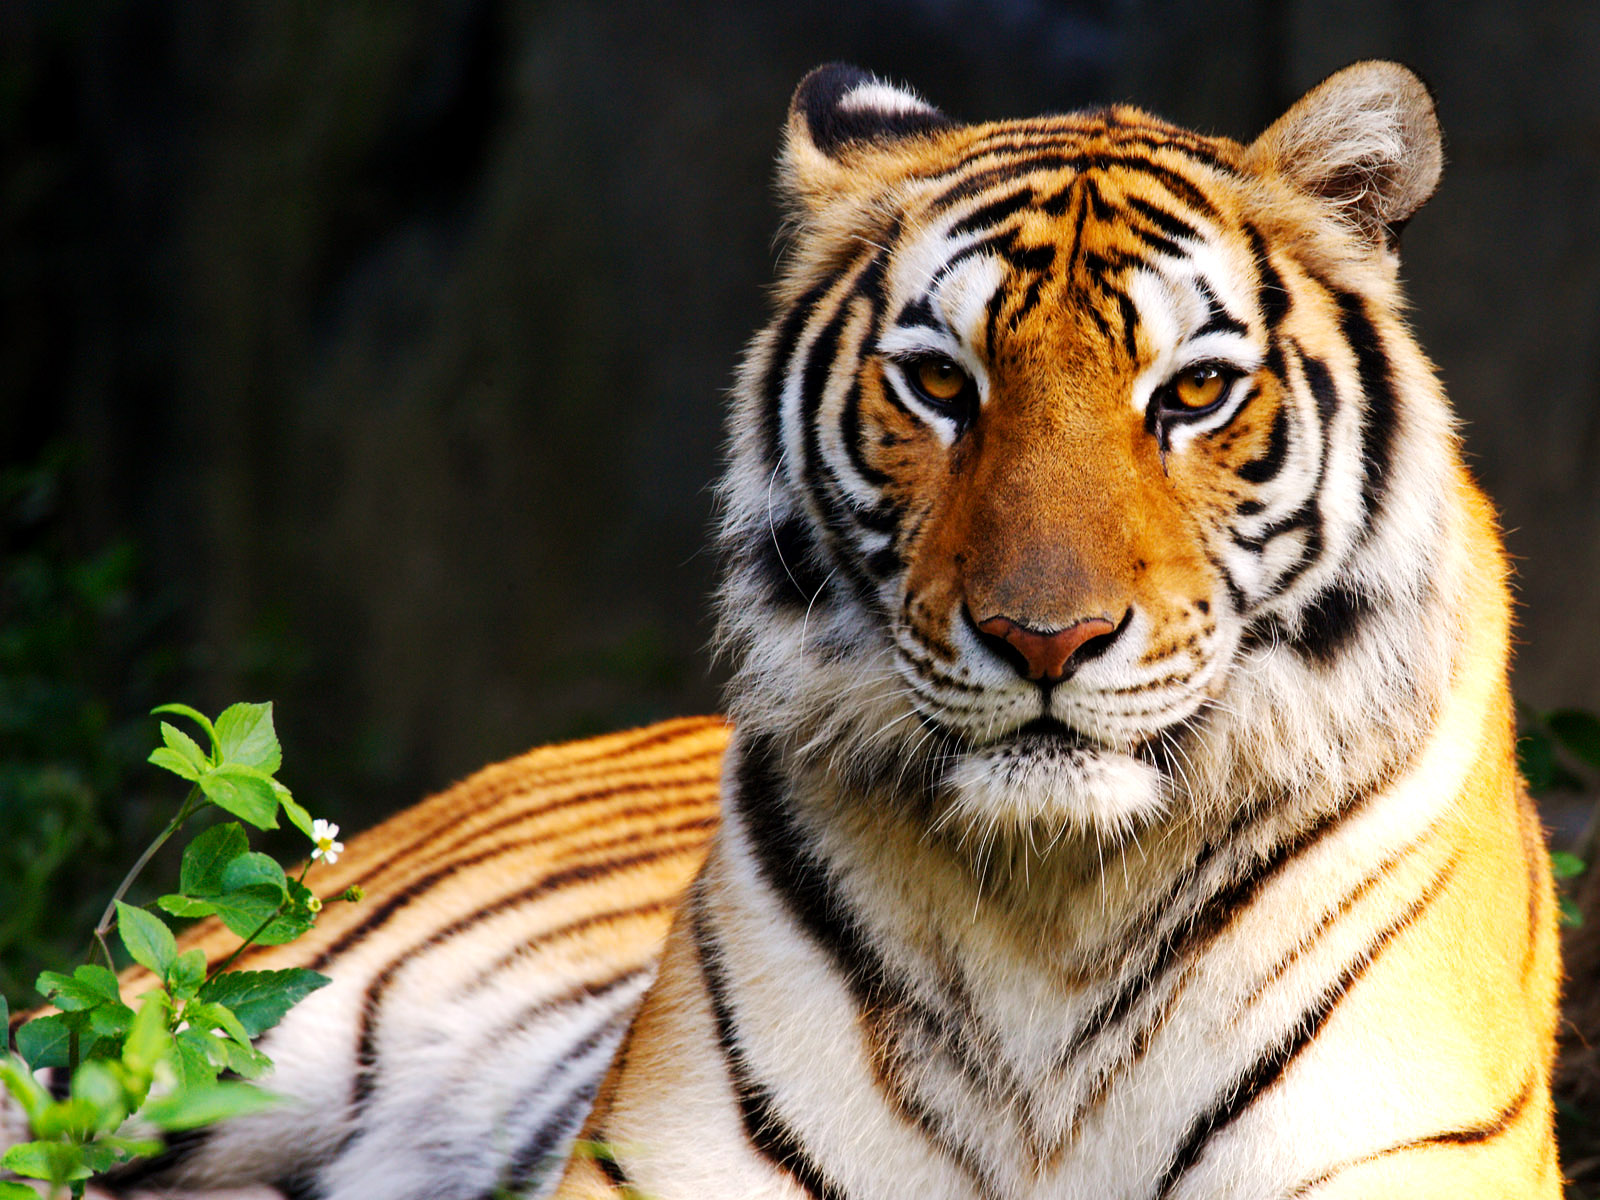 Tiger Hd Wallpapers: Colors Of Nature Tiger HD Wallpapers